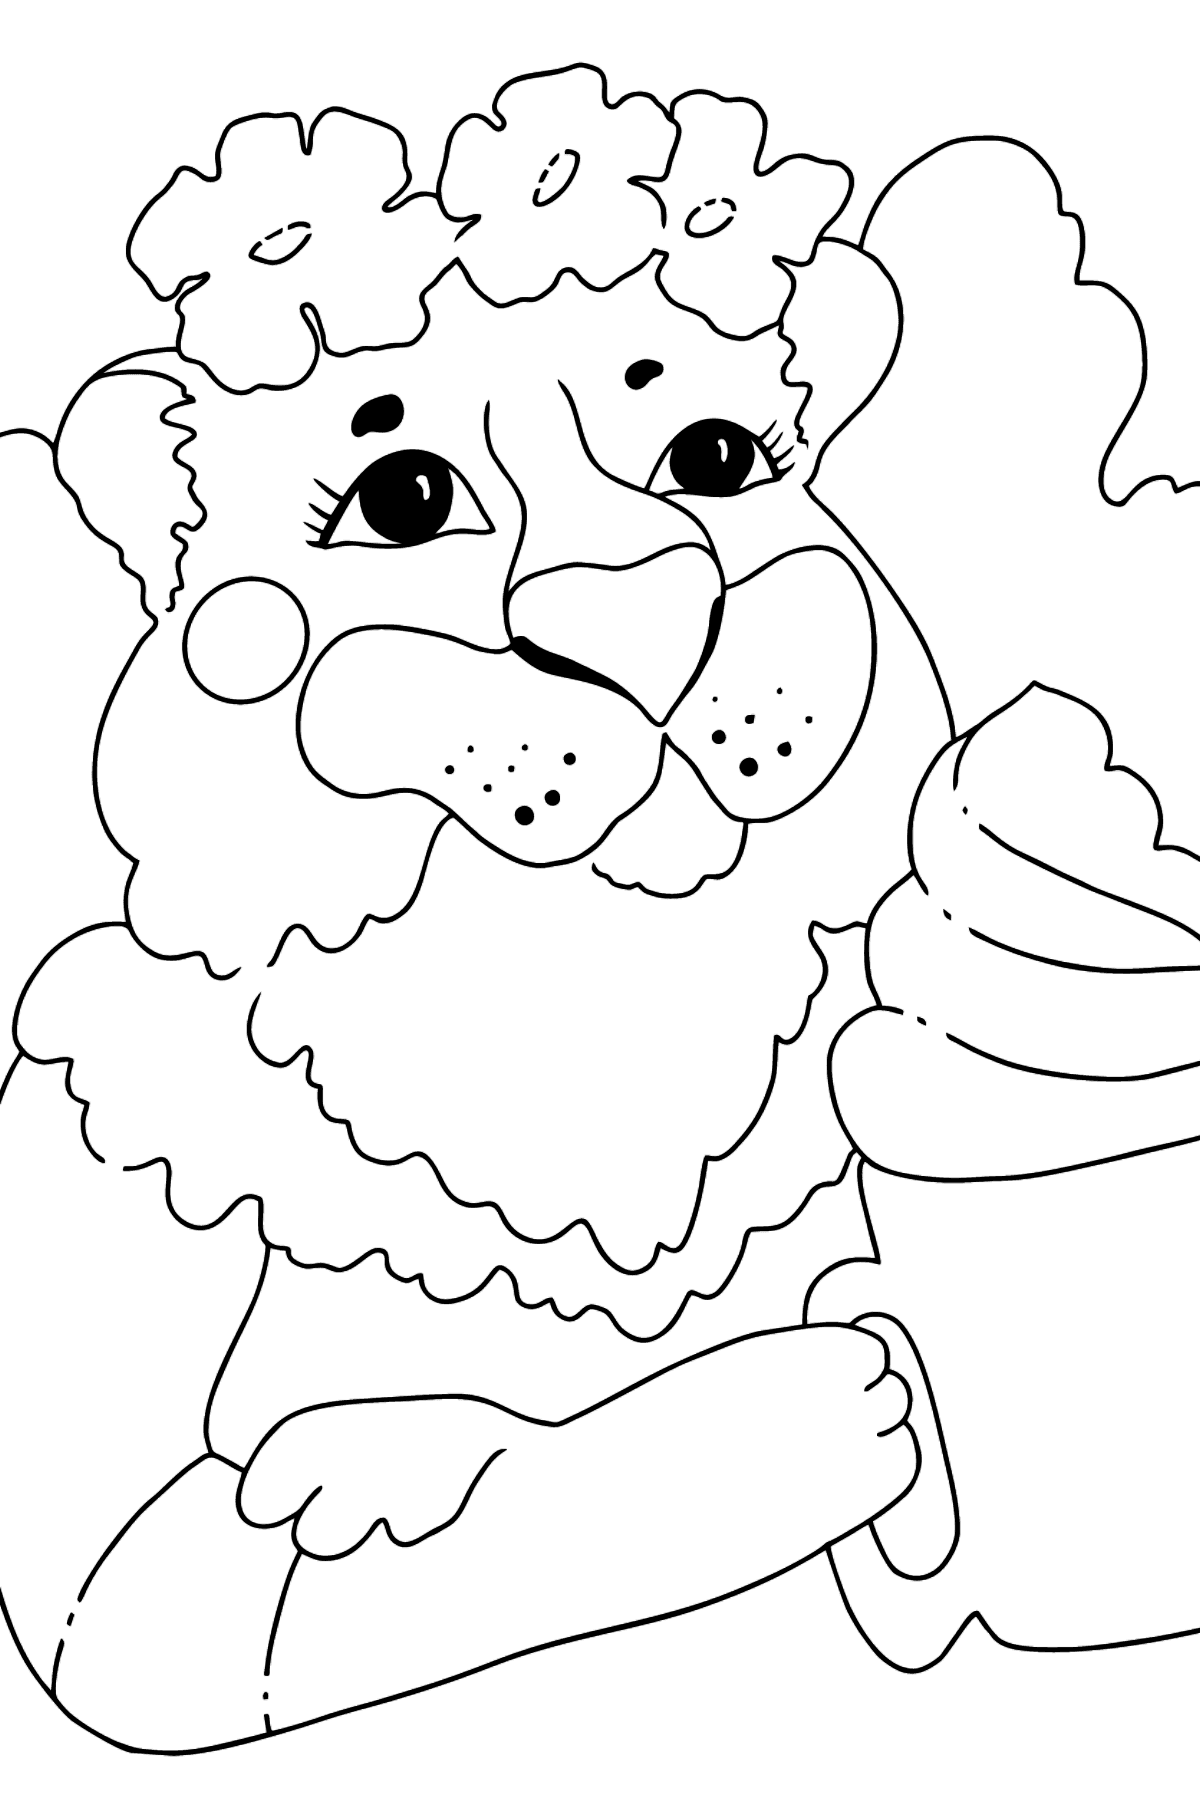 Coloring Page - A Tigress is Drinking Hot Chocolate - Coloring Pages for Kids